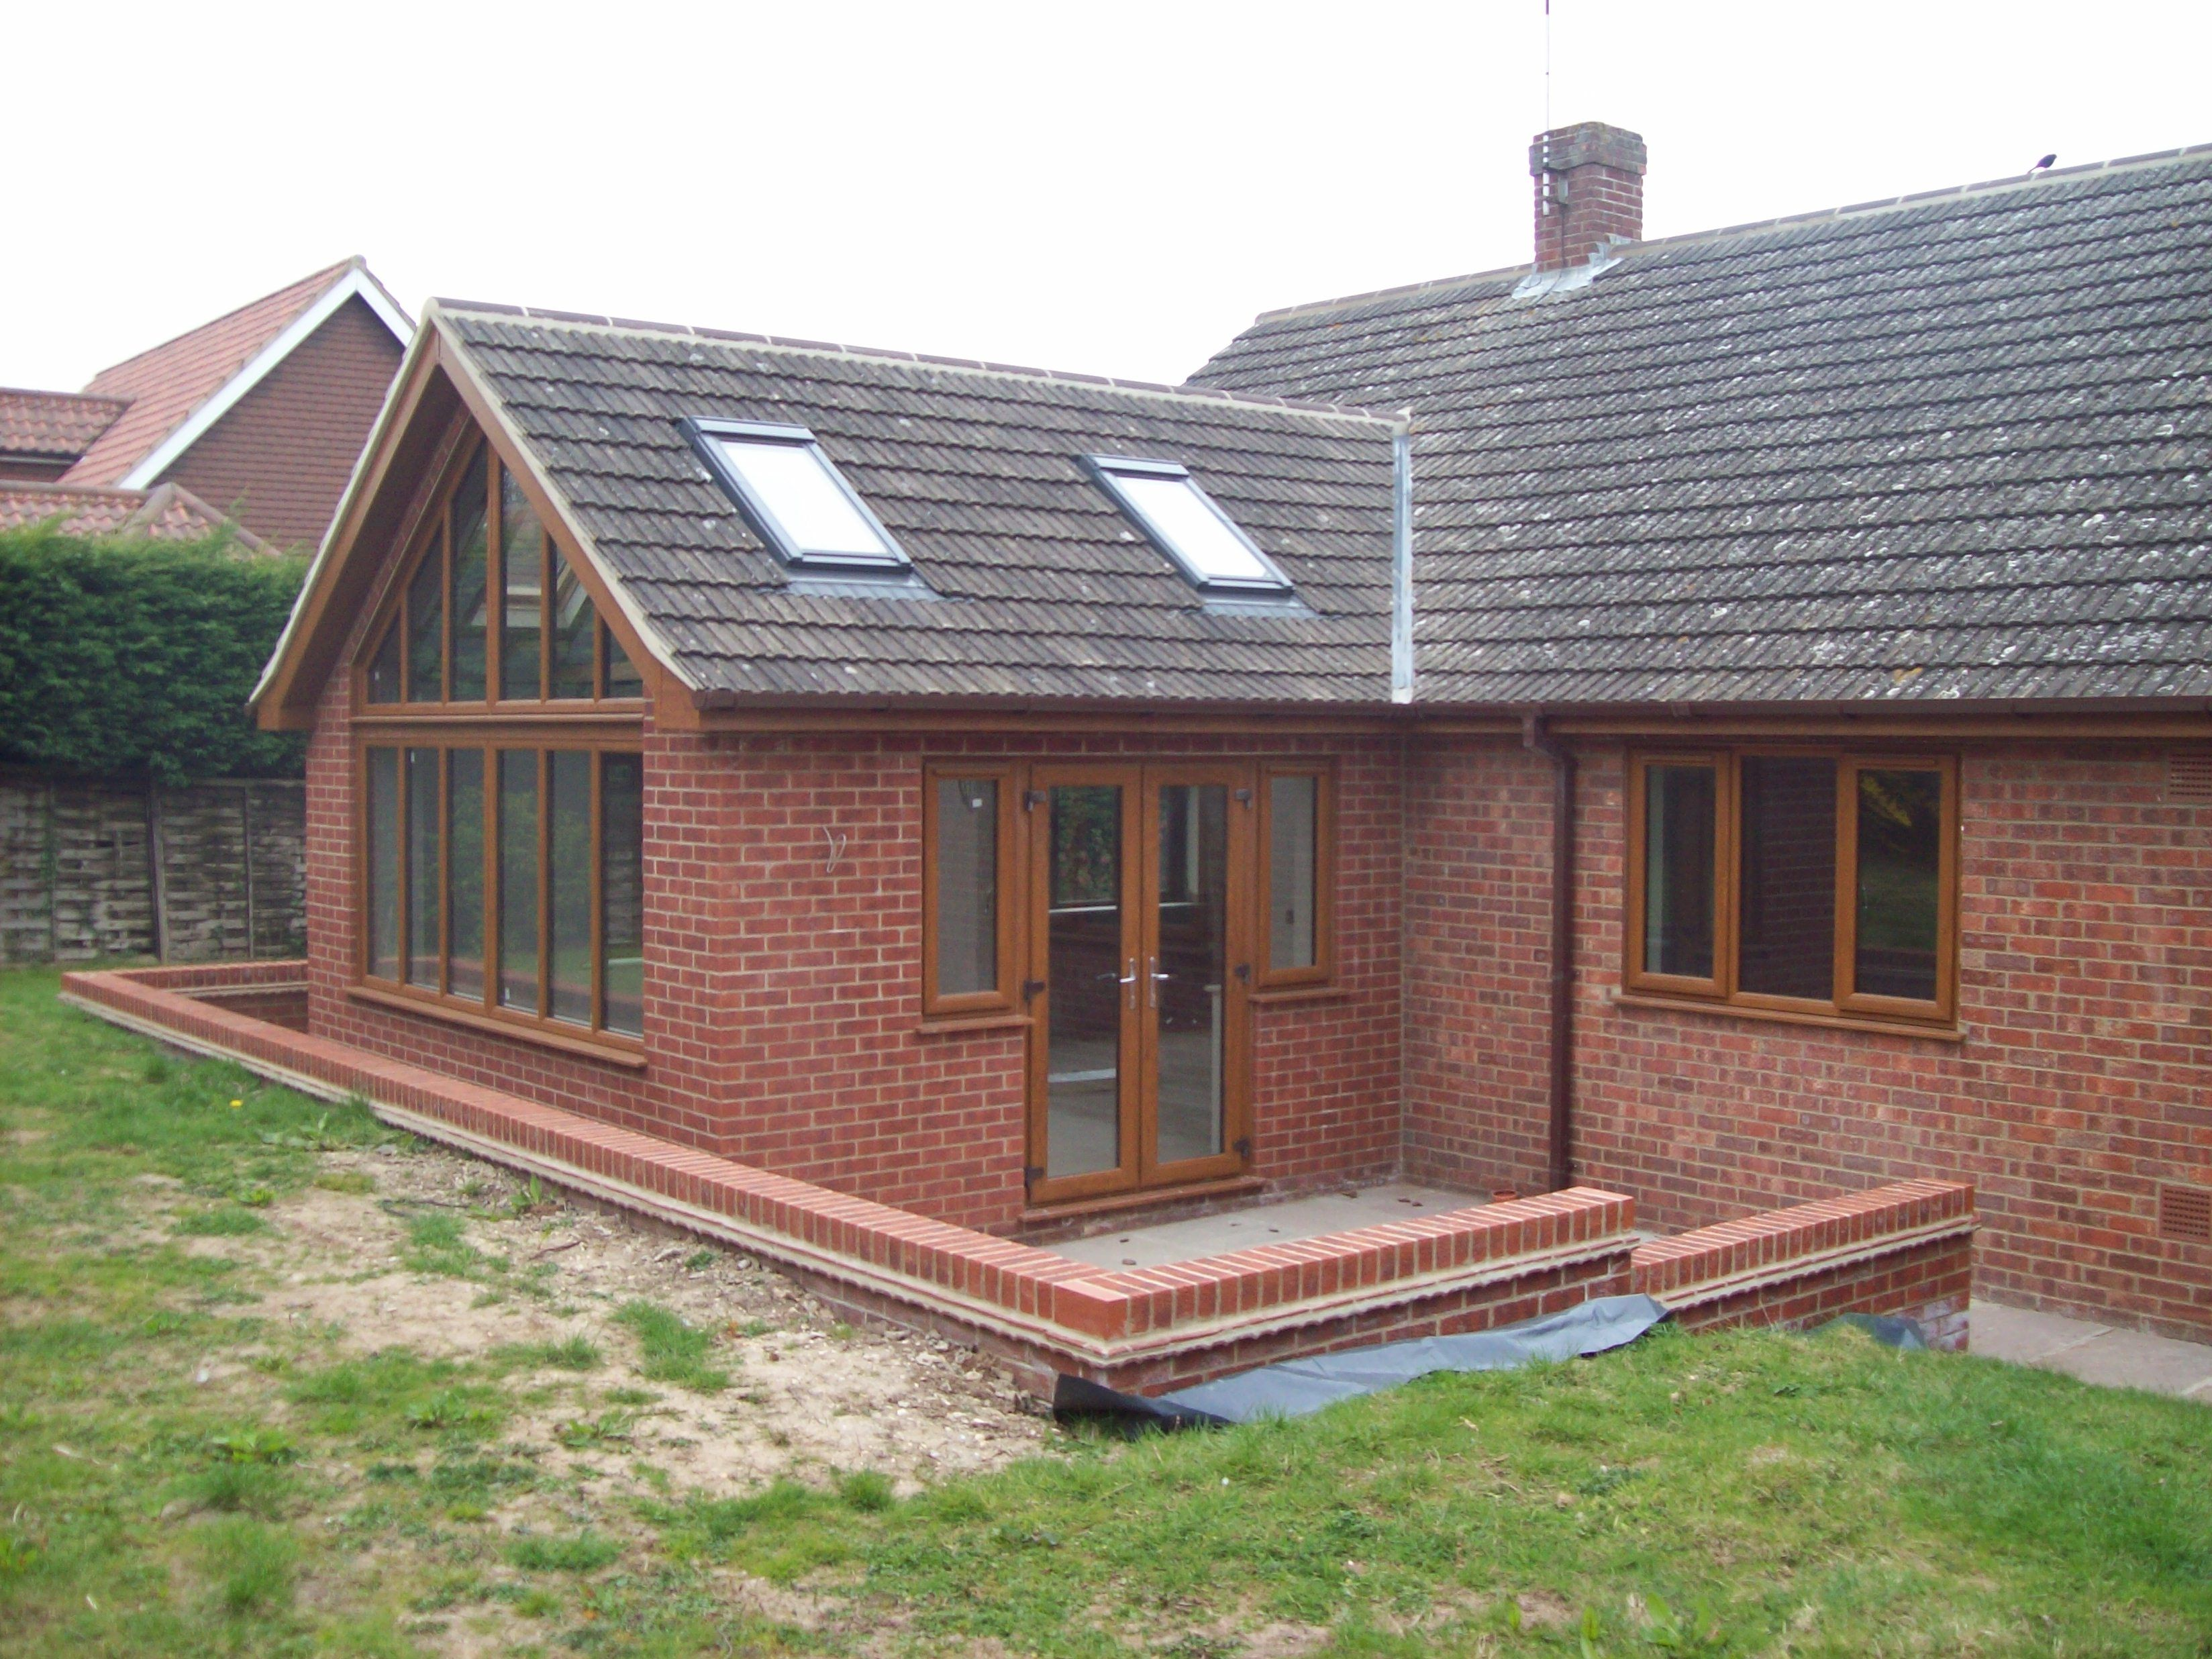 Extensions house google search new addition for Porch designs for bungalows uk